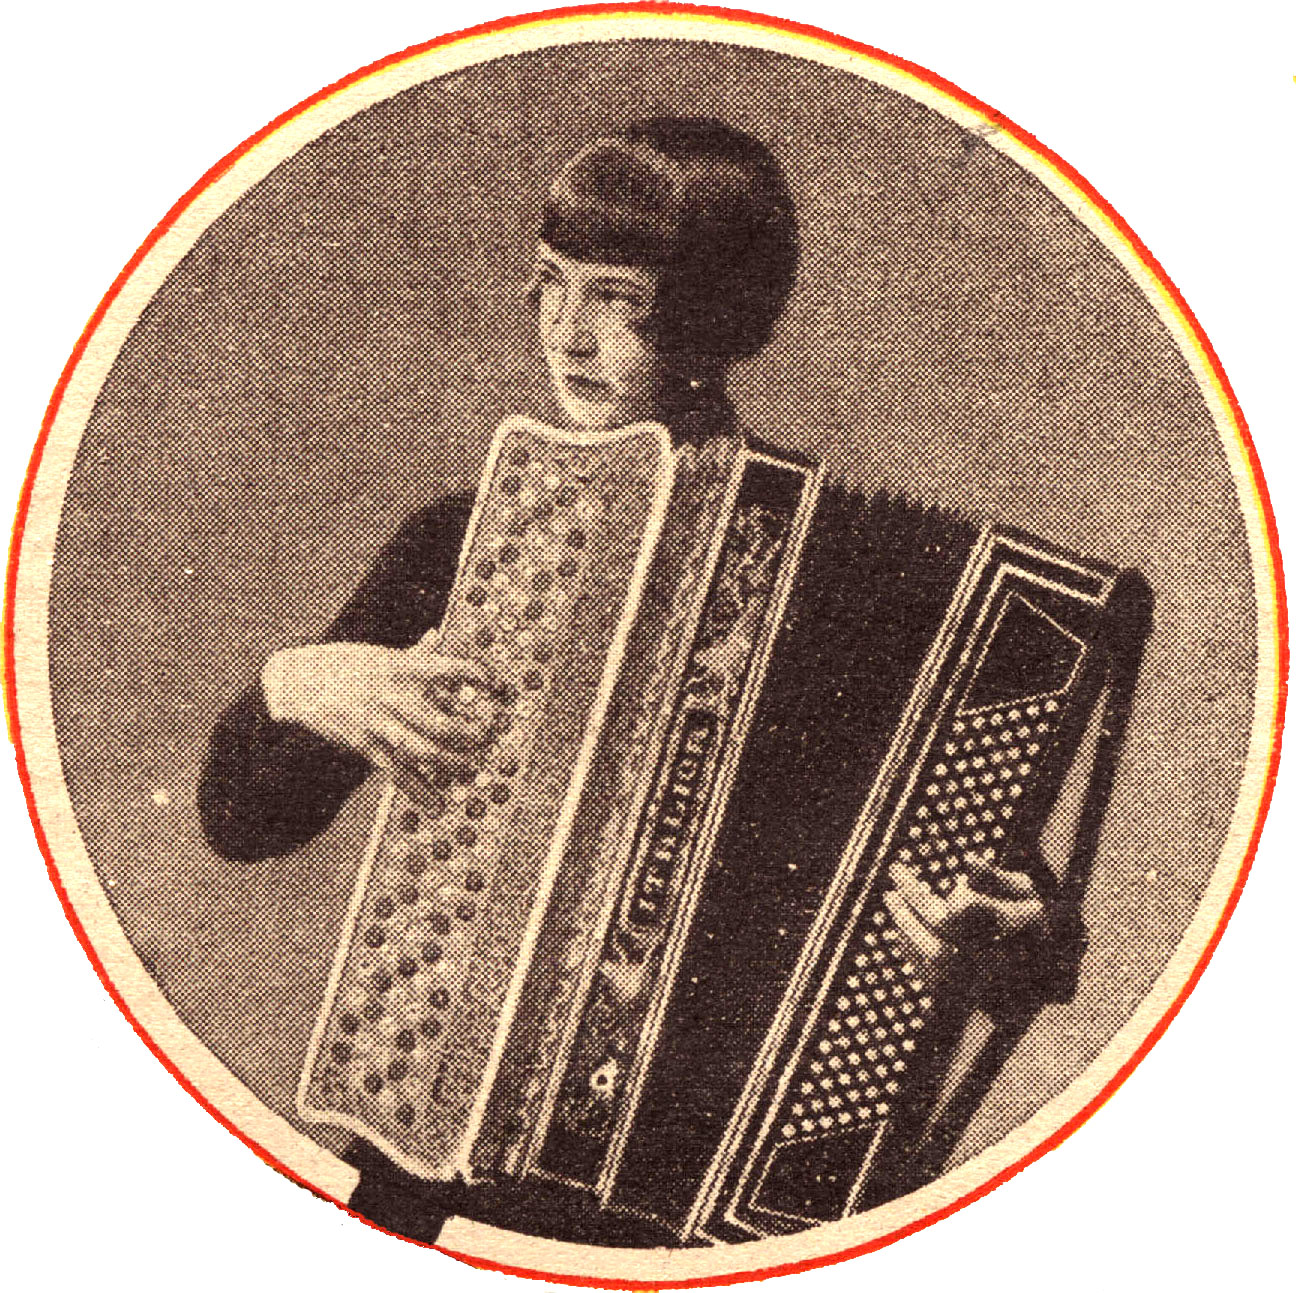 Stina Karlsson, Bångbro-Stina, on a cover of a recording in the Veckans Skiva series, 1932. Image source: Wikimedia Commons (from the collection of Fredrik Tersmeden)